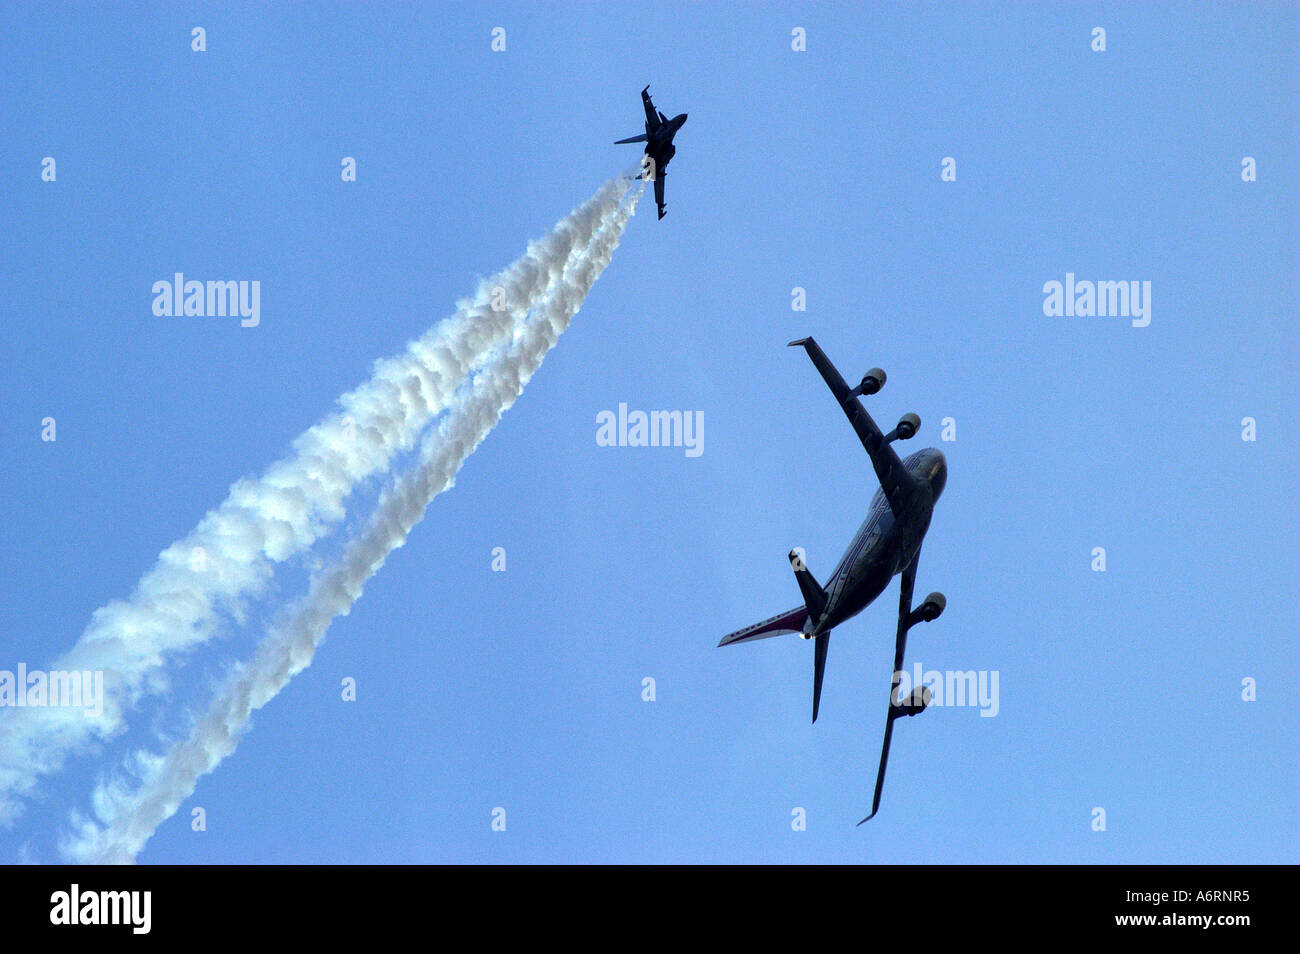 ASB77303 Commercial airliner fly past with fighter aircraft during air show - Stock Image